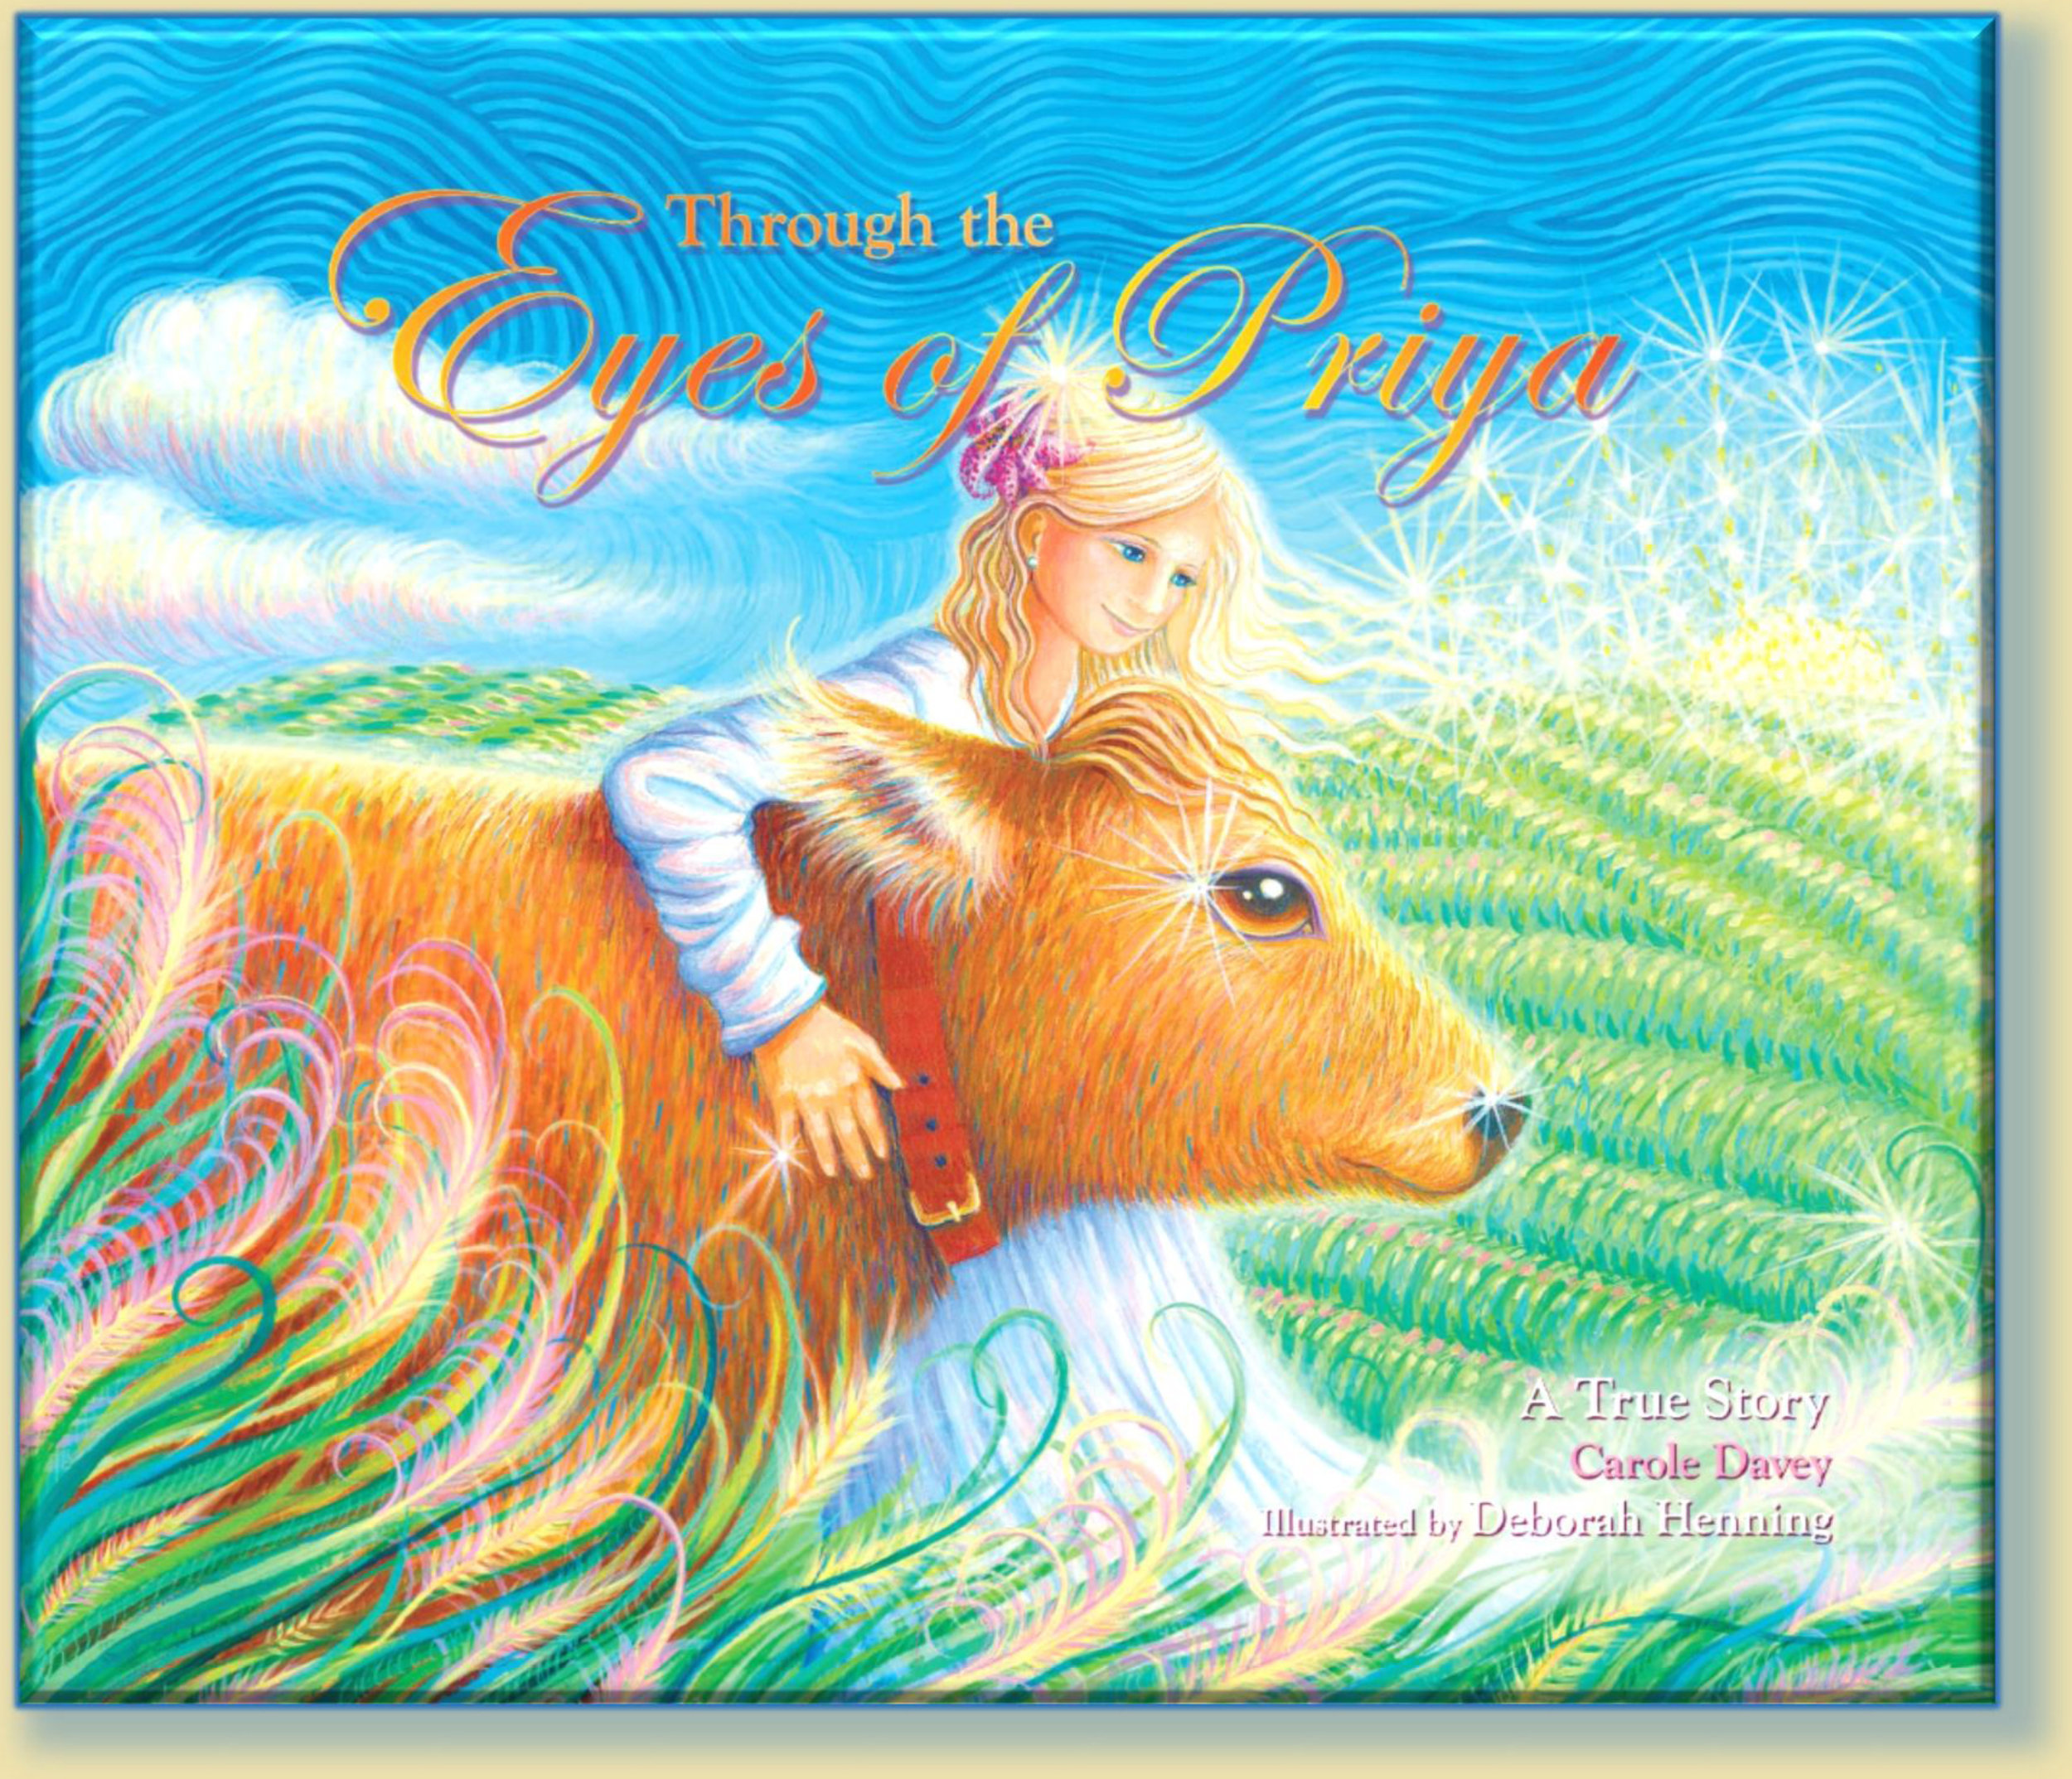 """- Through the Eyes of Priya is a children's book by Carole Davey, illustrated by Debby Henning.This story, with beautiful full-color illustrations throughout, is based on the true circumstances surrounding a young dairy cow named Priya. Each cow has her own personality and own story, but not many have the chance to live out their full natural life. Luckily, Priya's story has a happy ending. Through a remarkable turn of events, Priya's life was saved when she came to live on an """"Ahimsa"""" (nonviolent) farm—a farm where cows are allowed to graze freely on organic grass, live out their natural life span, and have the joy of nursing and caring for their young calves. Through the Eyes of Priya gives children and adults of all ages a look into the heart and mind of a mother cow.Hardcover, 50 pages of full-color illustrations."""